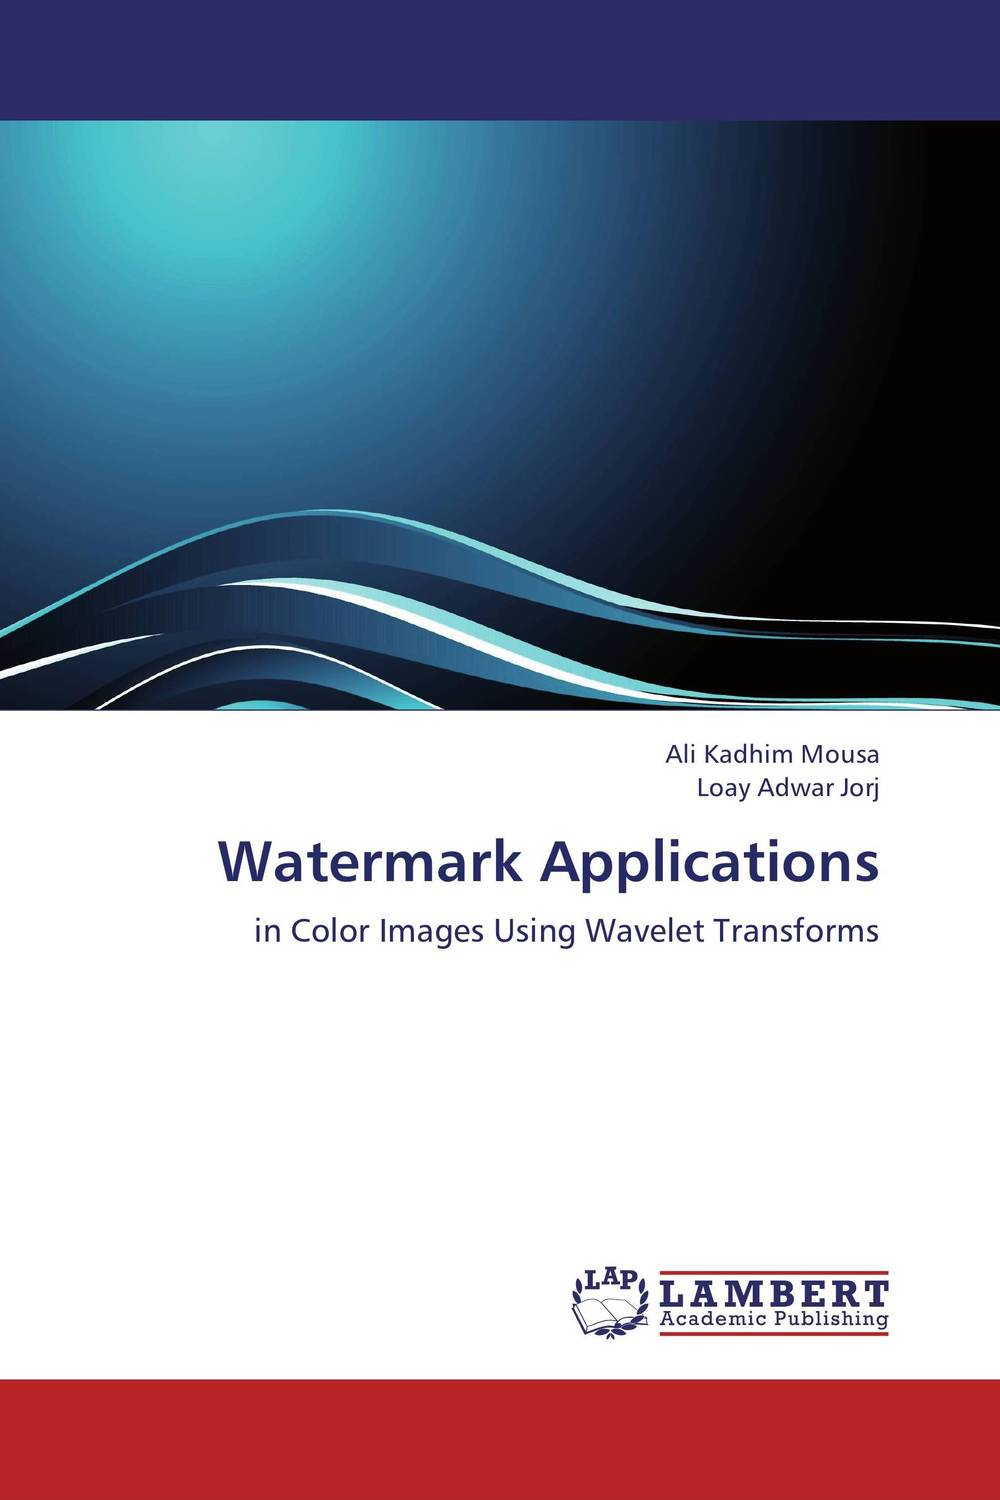 Watermark Applications image compression using wavelet transform and other methods